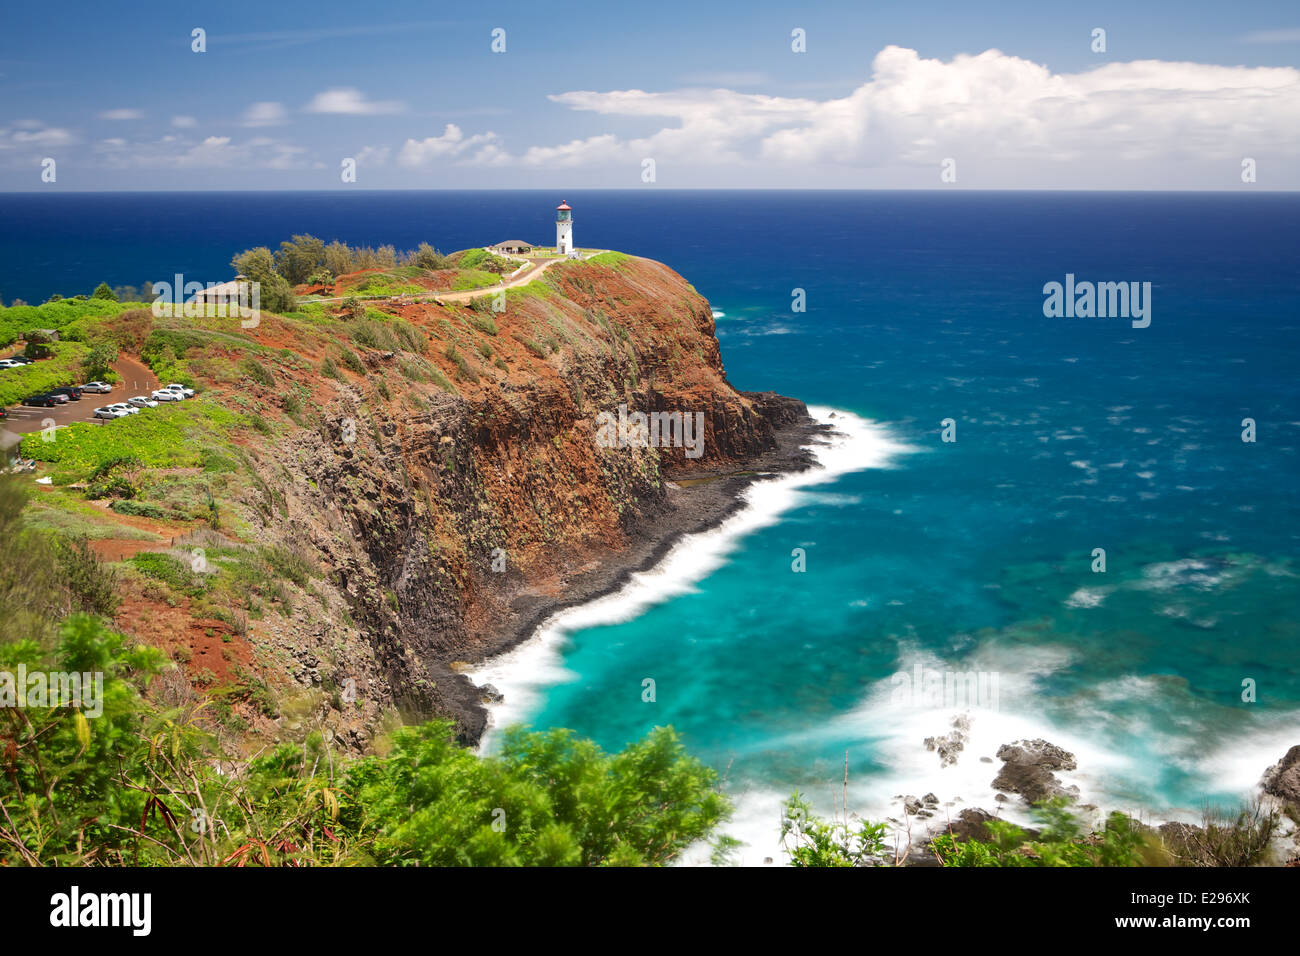 Quaint Kilauea Lighthouse on the beautiful west shore of Kauai, the Garden Isle of Hawaii - Stock Image